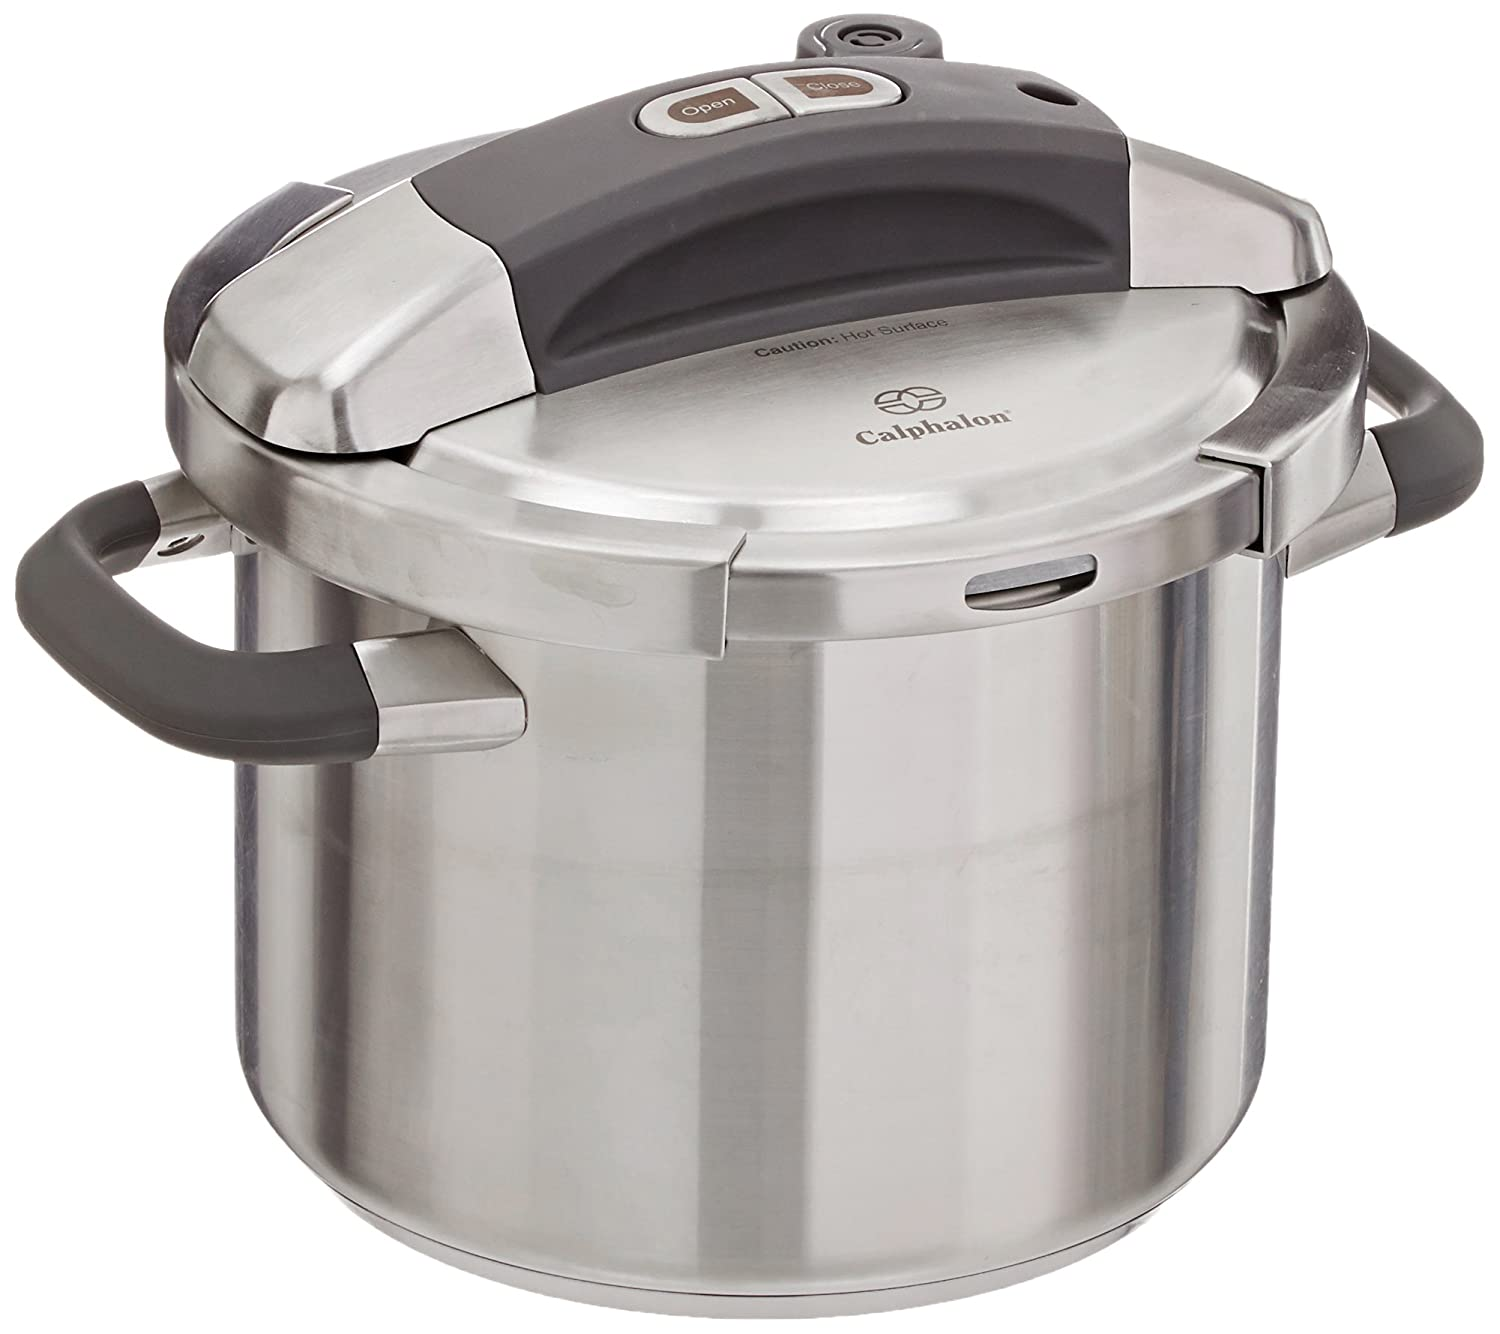 All-American 10-1/2-Quart Pressure Cooker/Canner